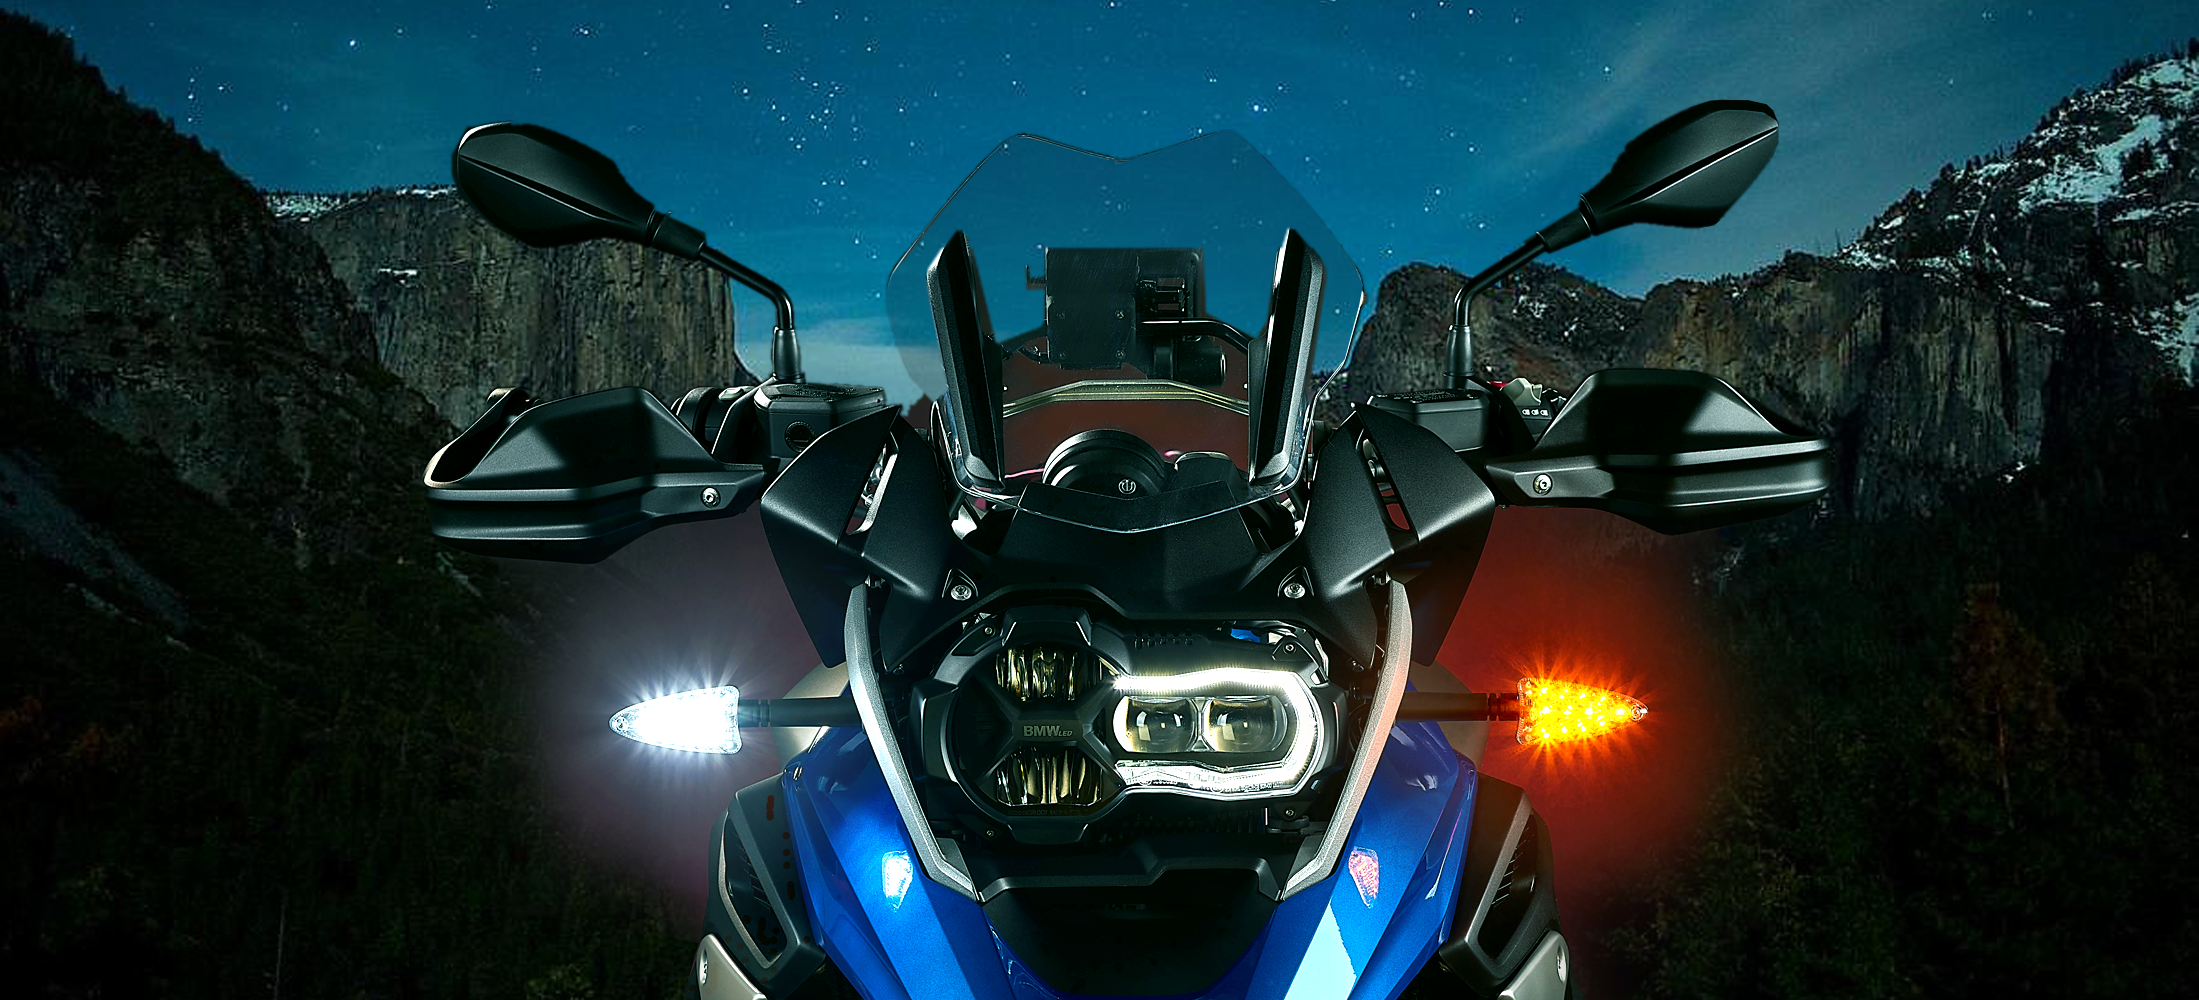 High-intensity LED Motorcycle Light Upgrades